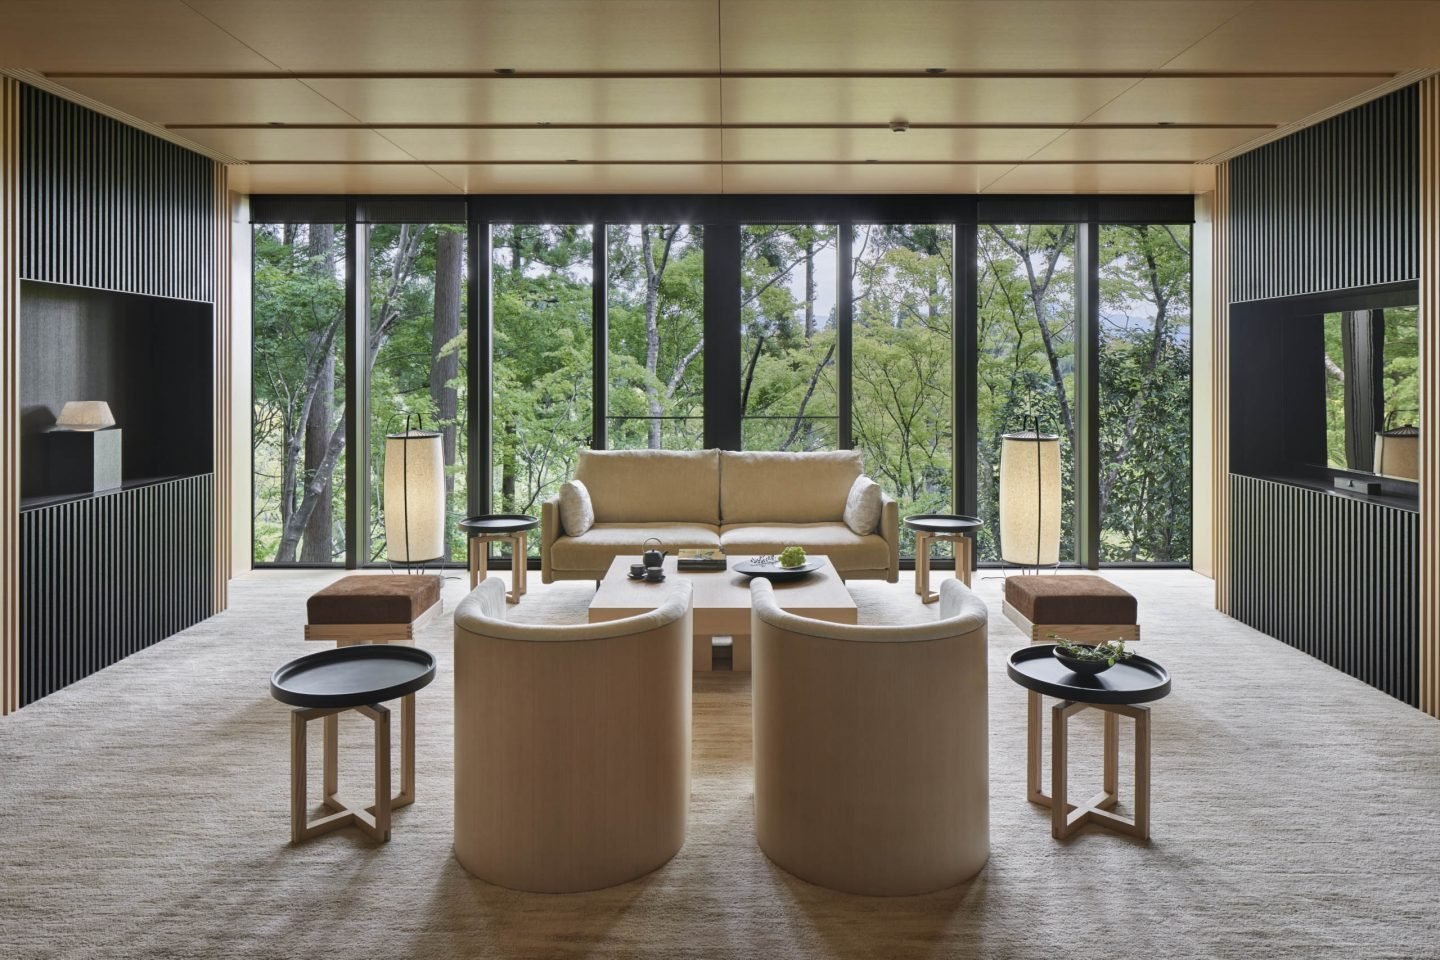 Aman Kyoto, Japan - Washigamine Pavilion Living room